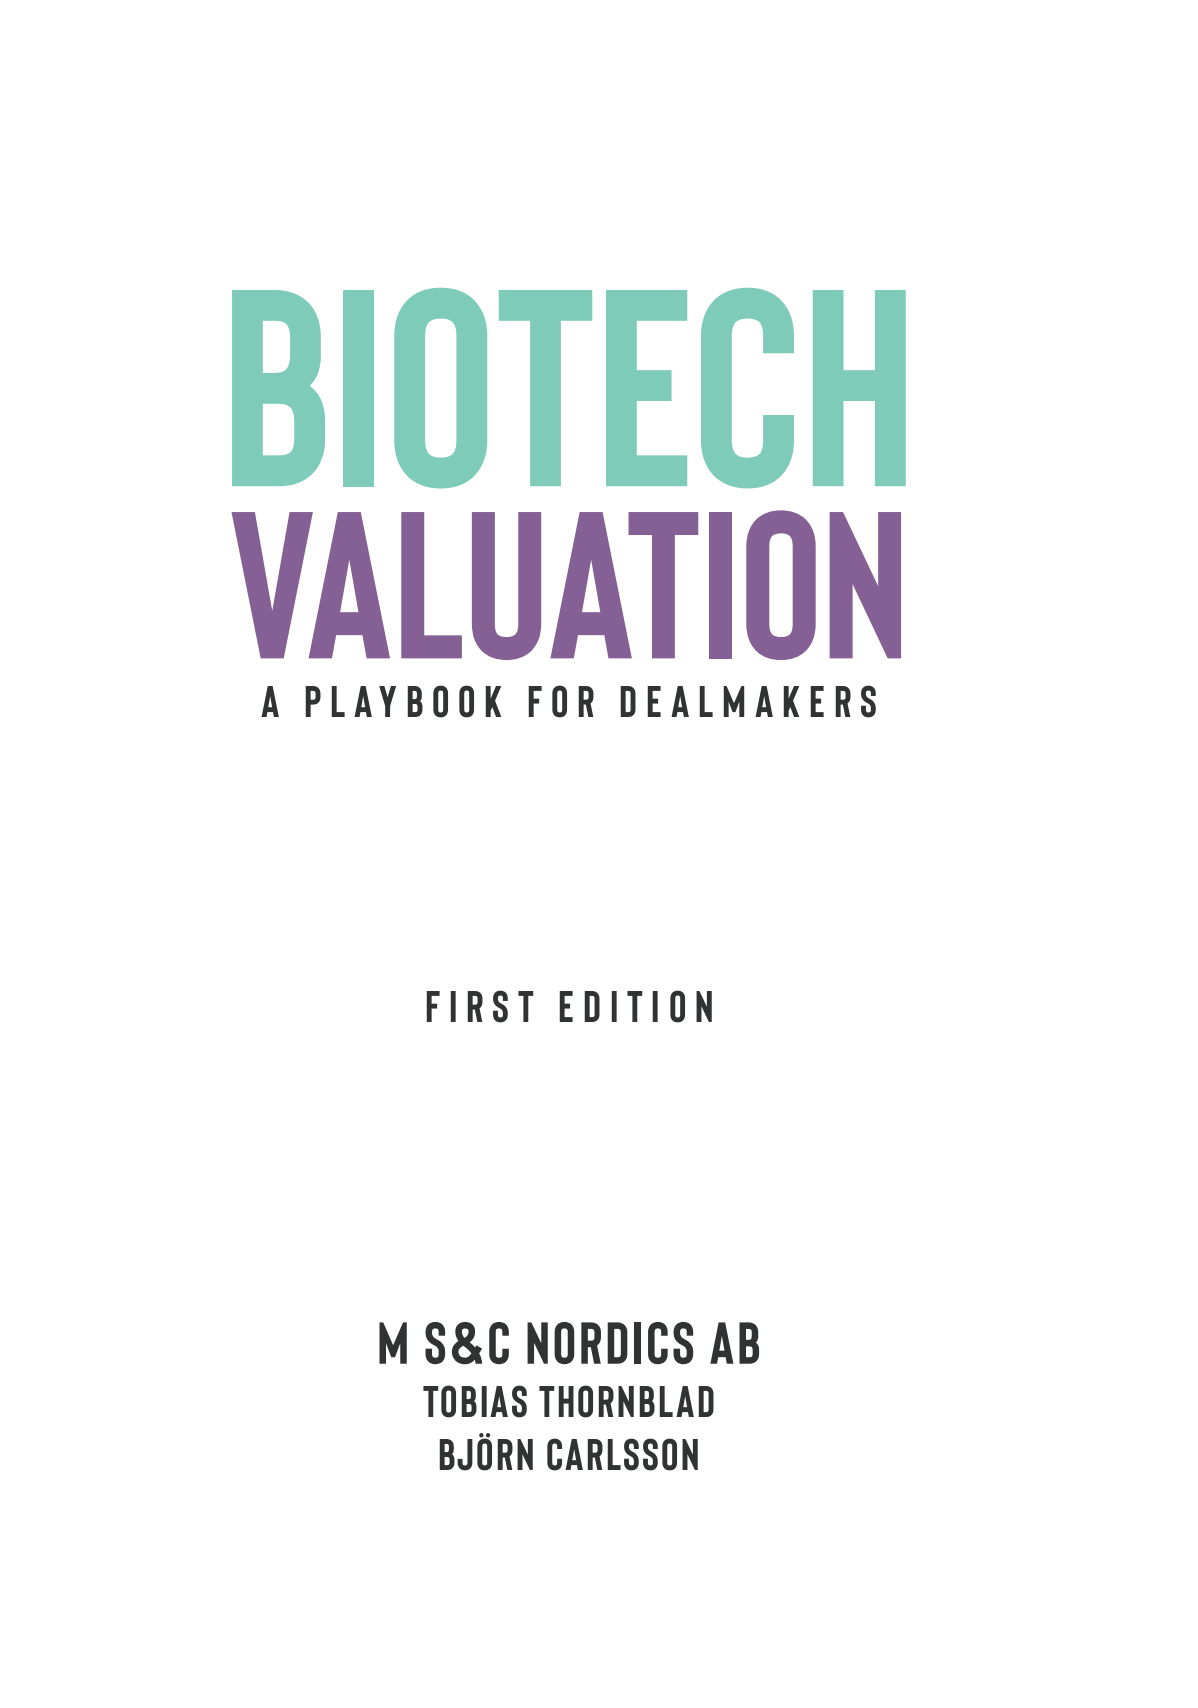 Typesetting the Biotech Valuation playbook